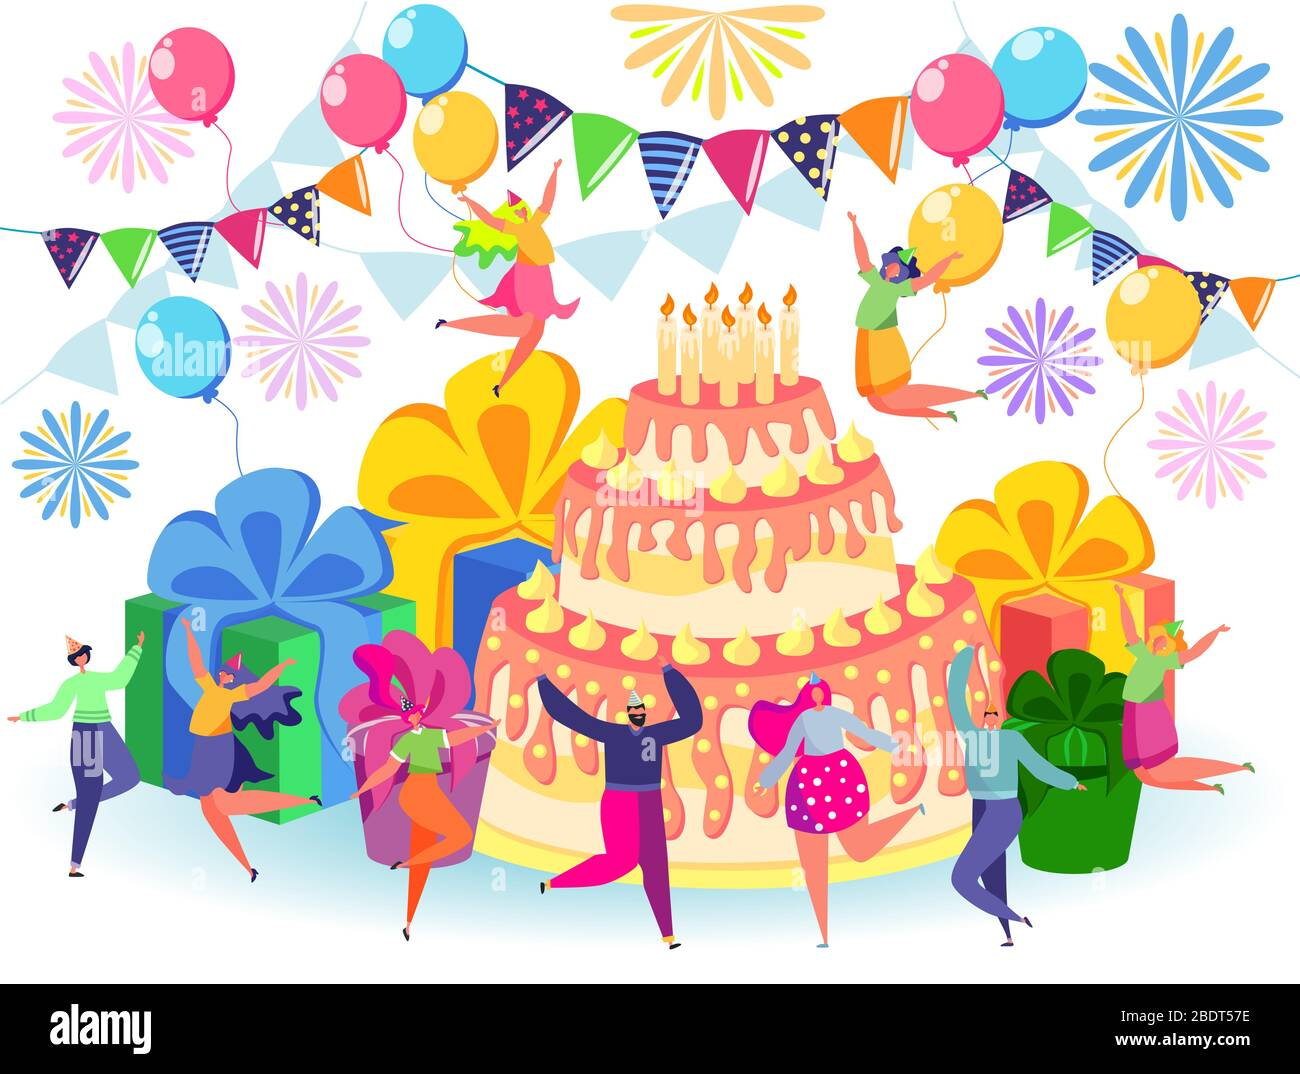 Happy Birthday Celebration Concept With Friends Anniversary Confetti With Happy Funny Flat Cartoon Characters Stock Vector Image Art Alamy